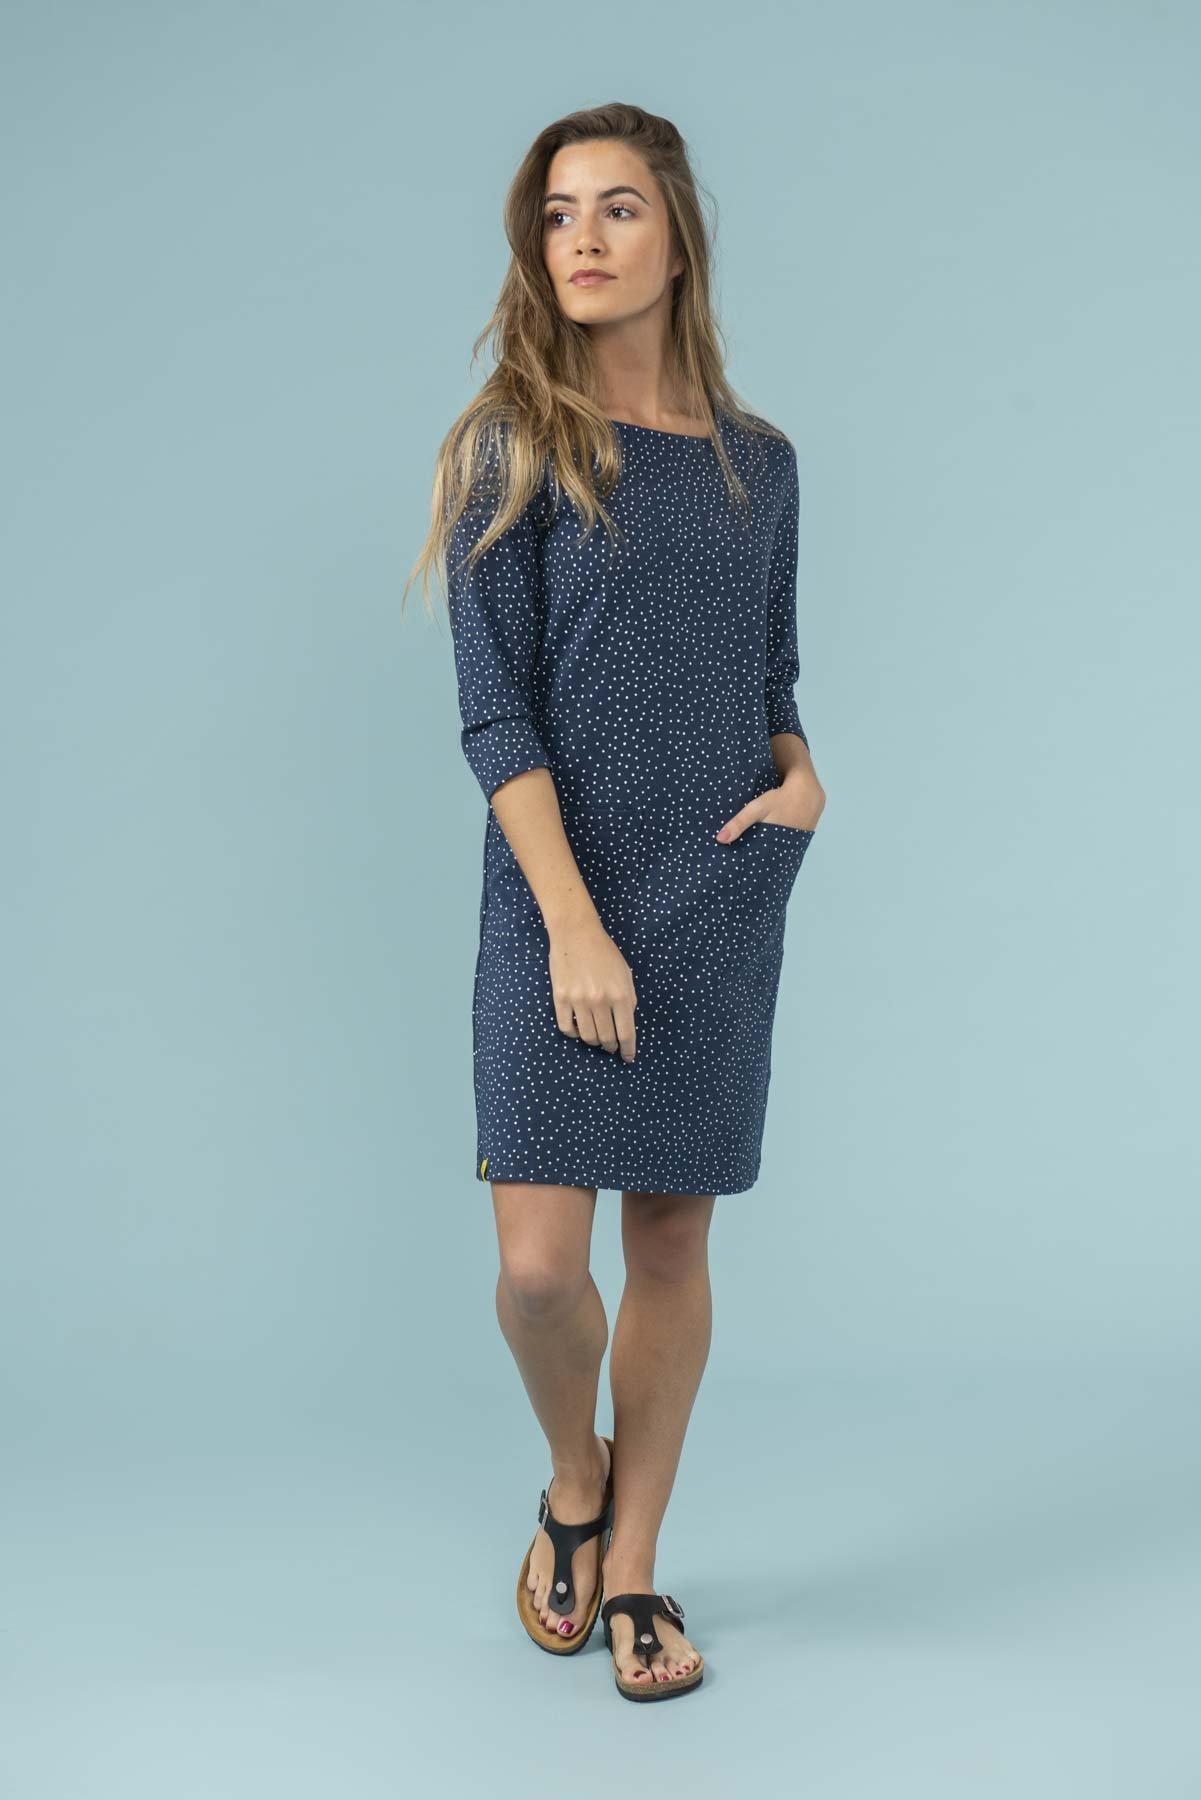 polka dot navy dress from lighthouse clothing